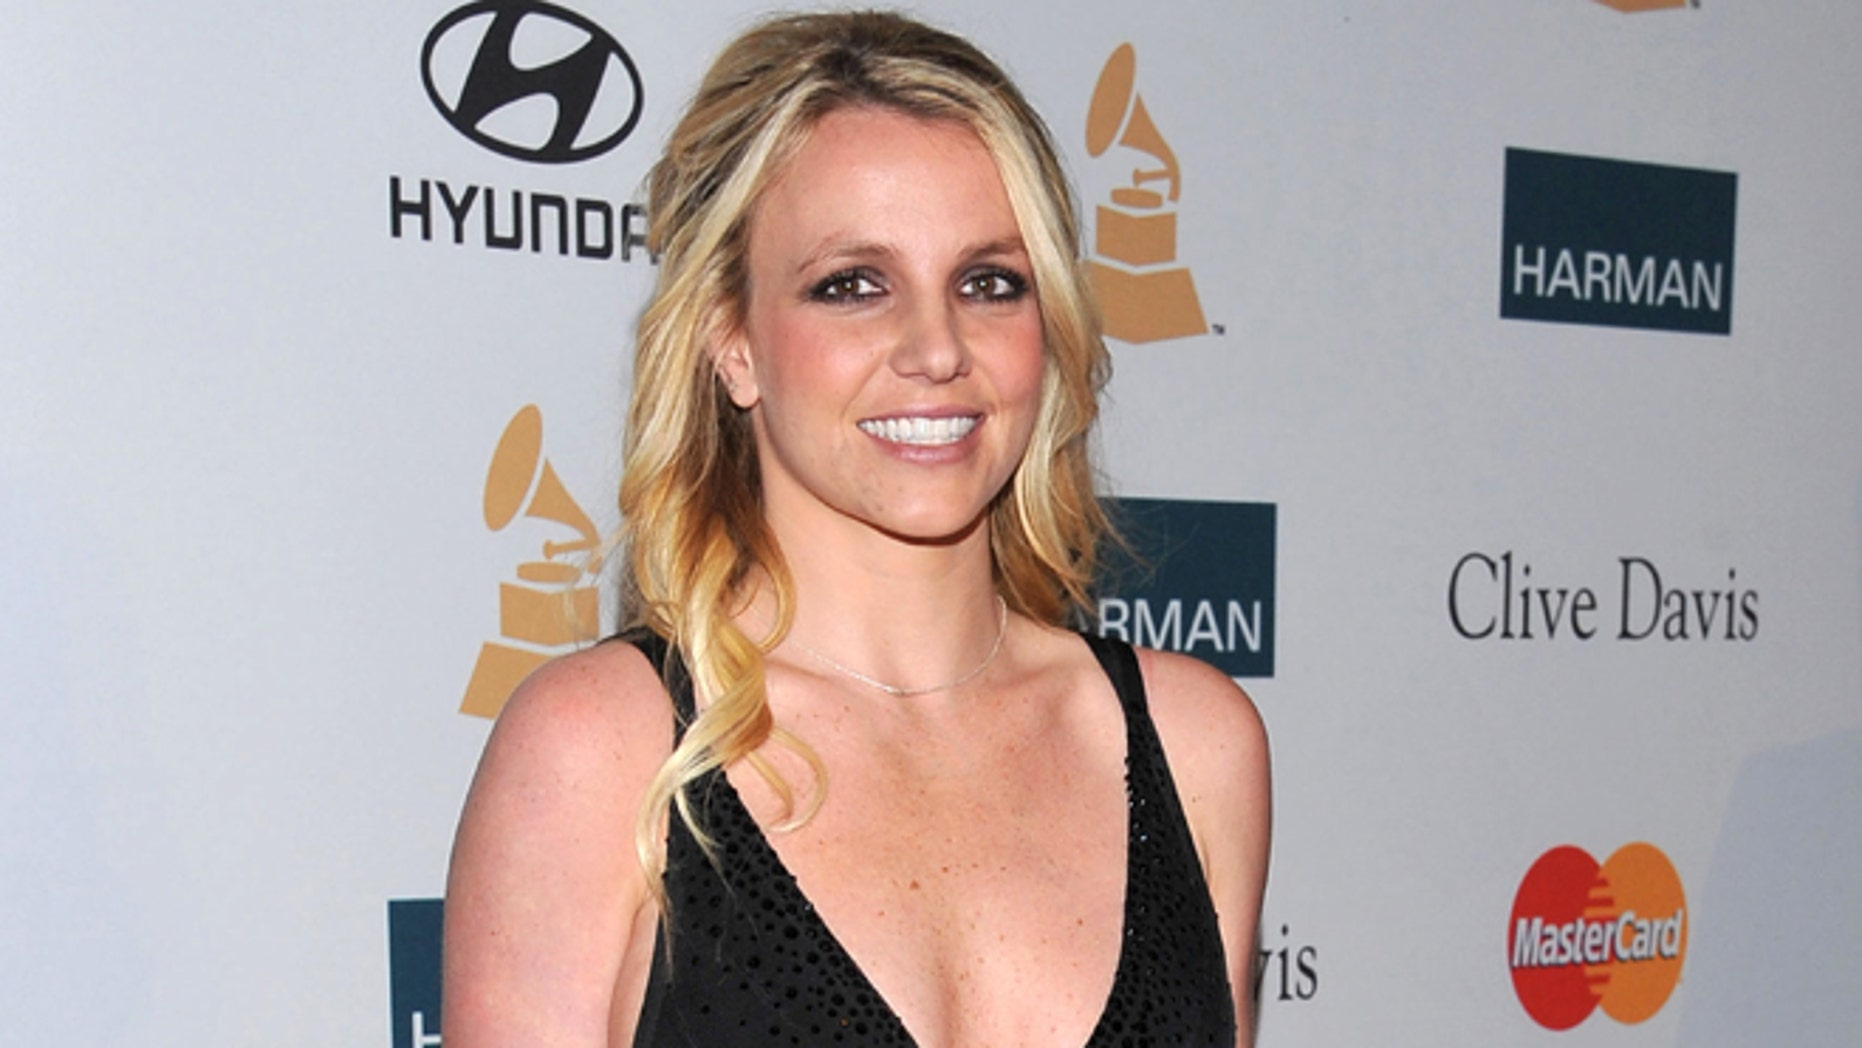 Feb. 11, 2012: In this file photo, singer Britney Spears arrives at the Pre-GRAMMY Gala & Salute to Industry Icons with Clive Davis honoring Richard Branson in Beverly Hills, Calif.